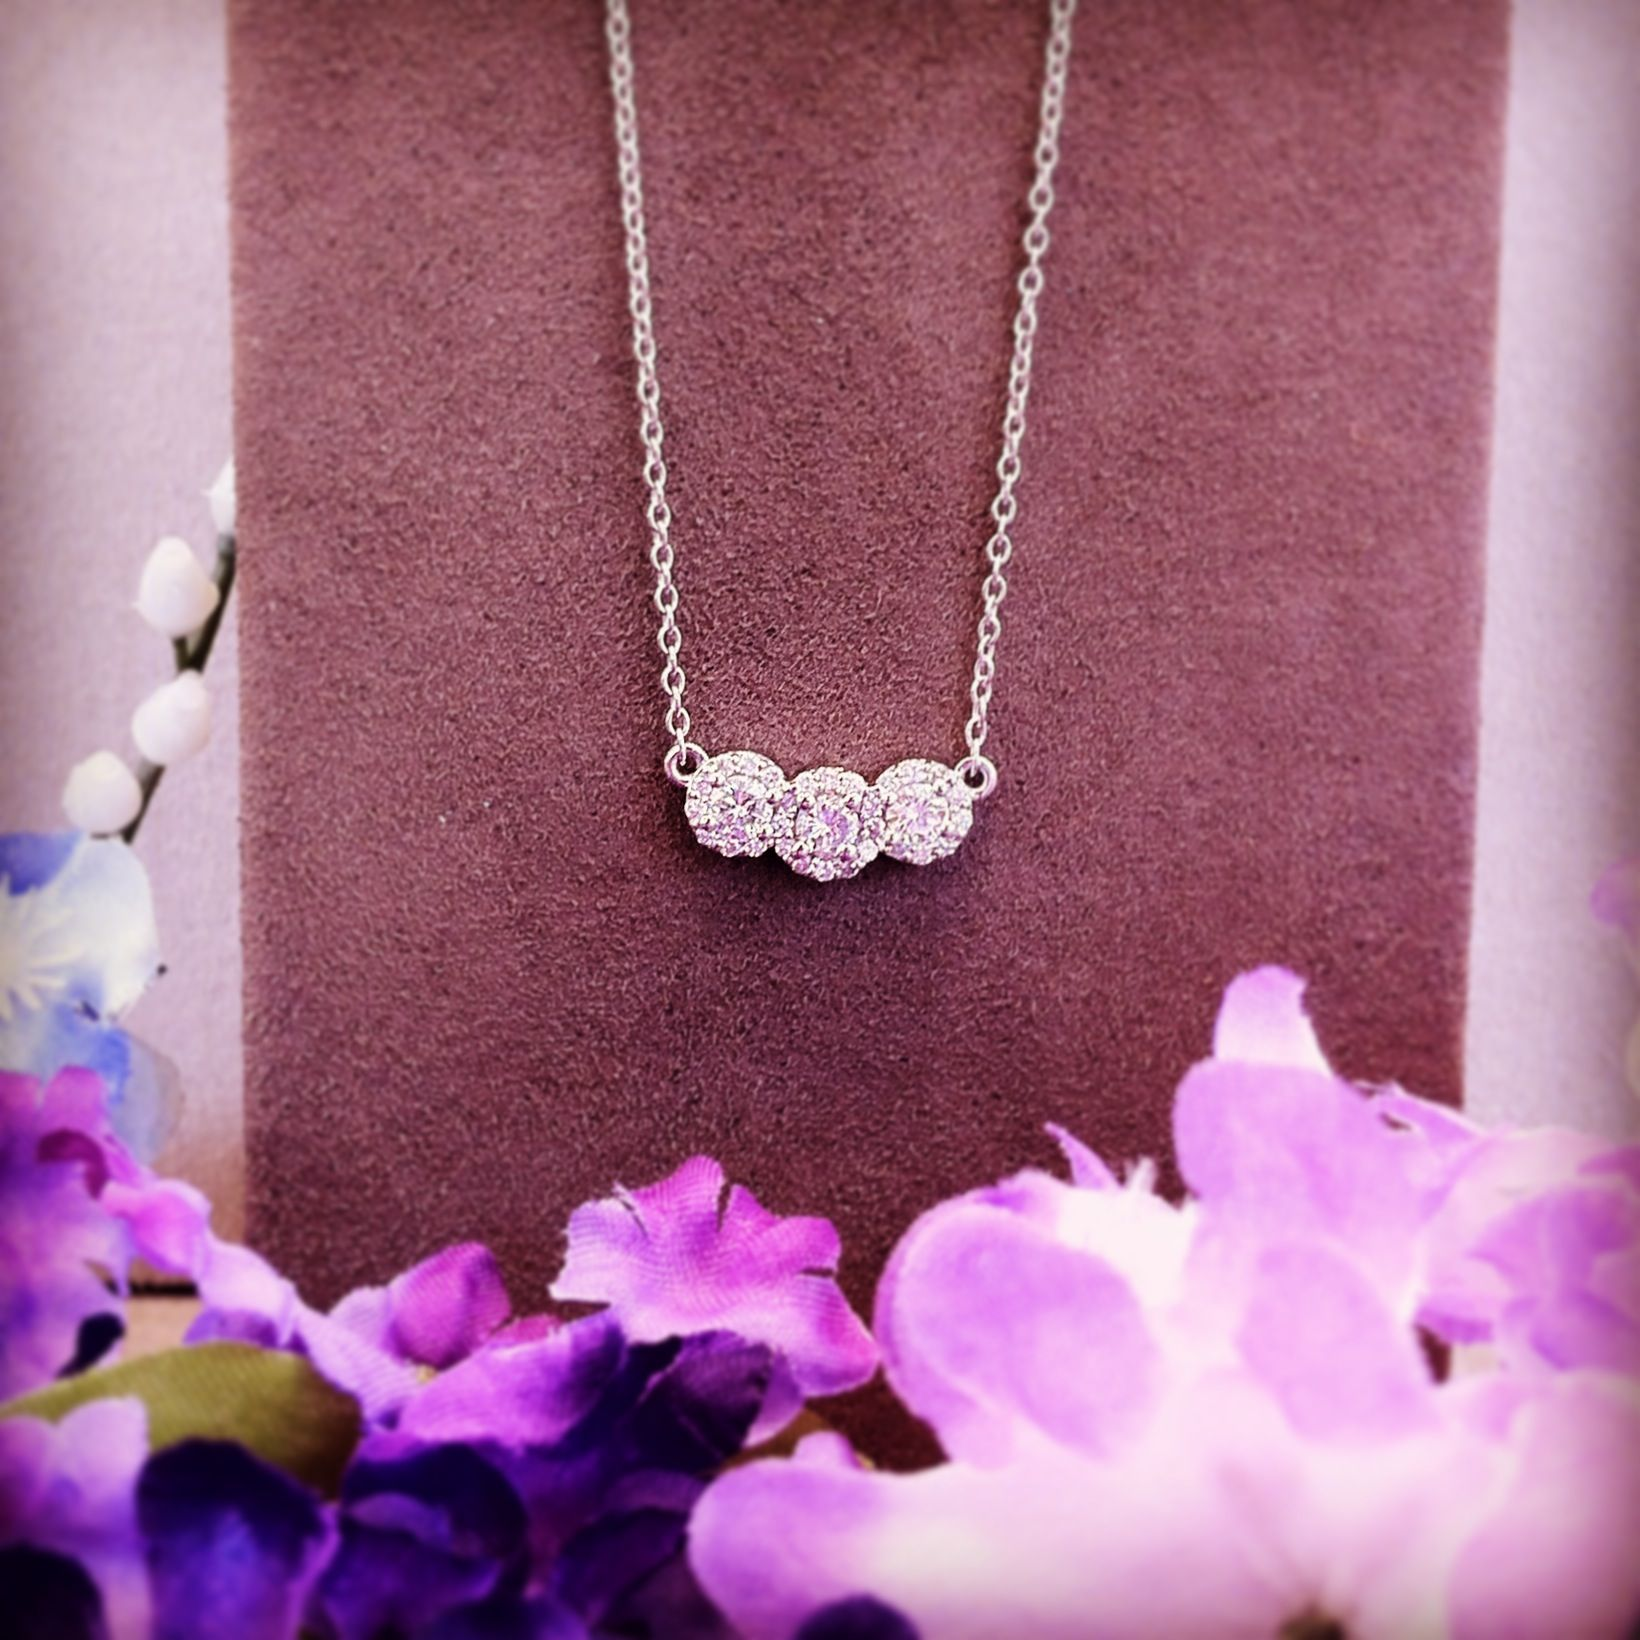 One of our gorgeous #custom pieces created with #family #heirloom ...